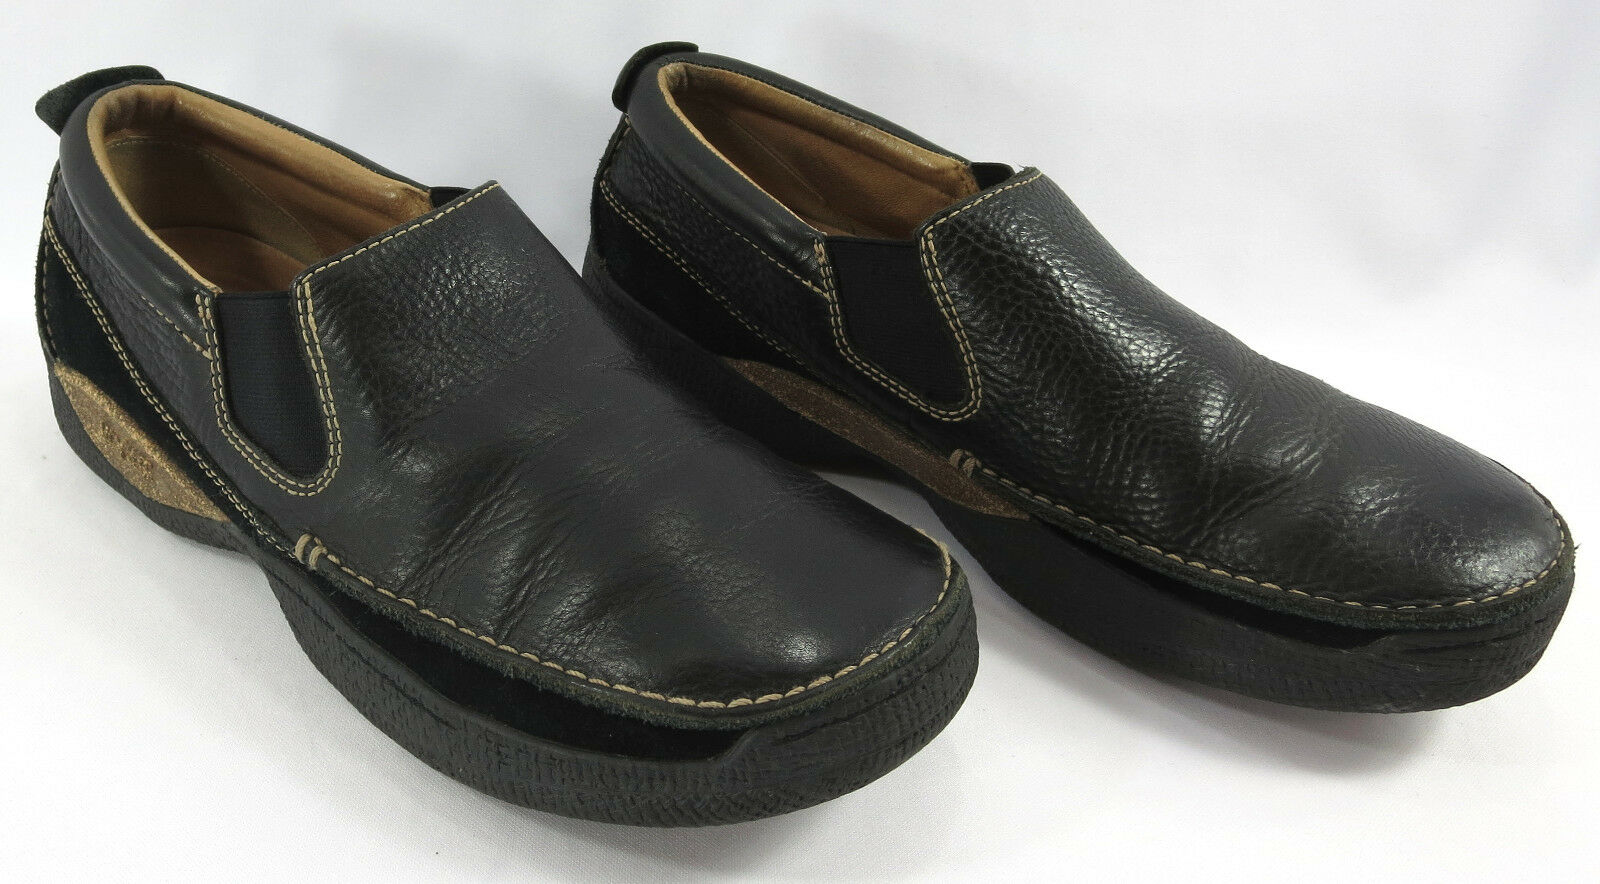 Rogue Mens Shoes 12 US 11.5 Black Leather Suede Loafers Slip Ons Shoes